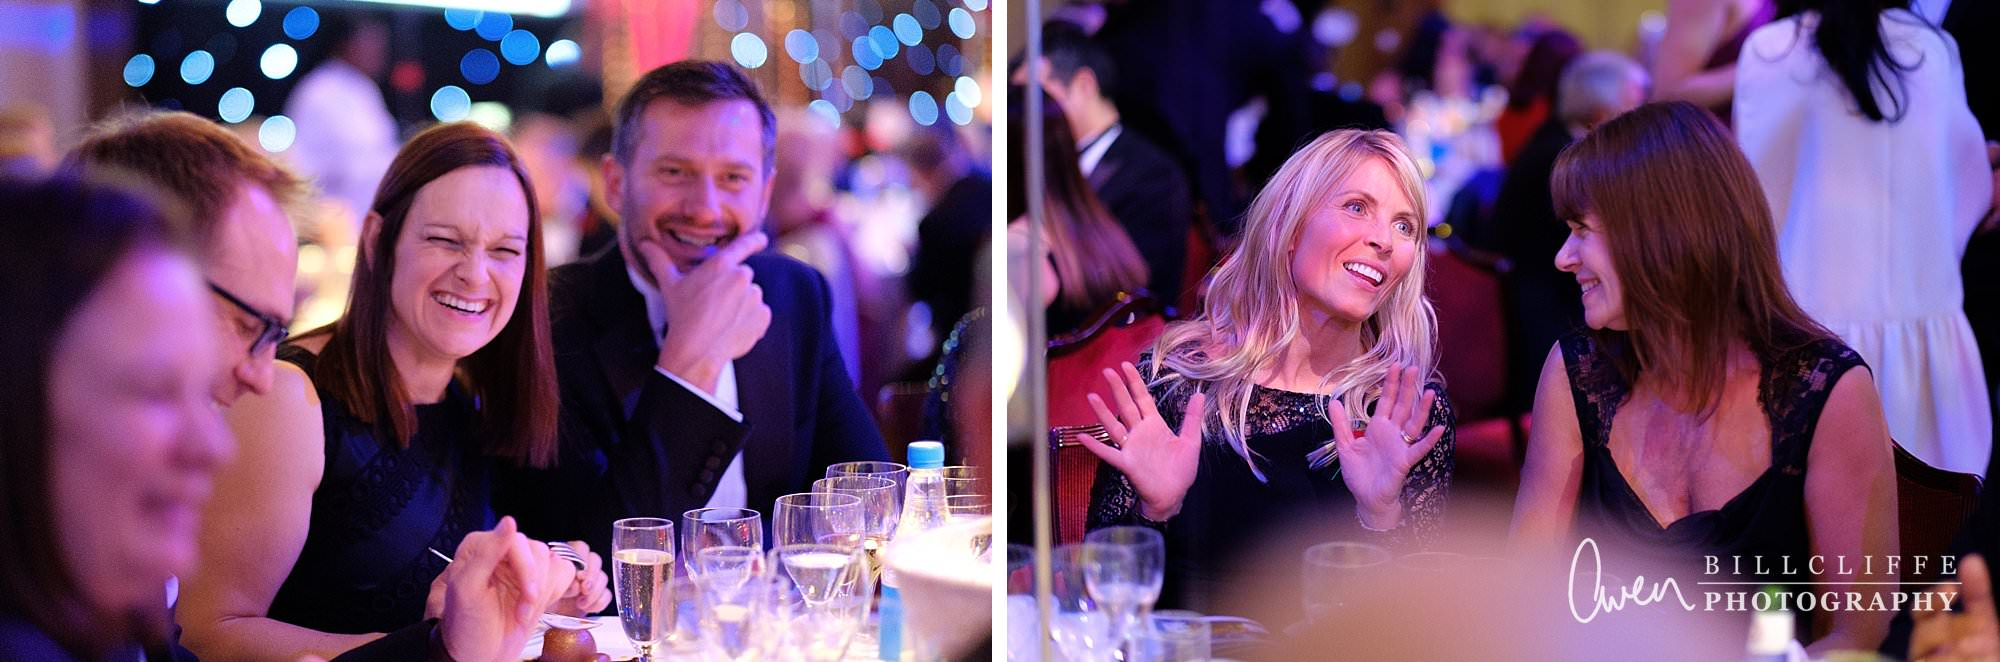 london event photographer park lane pb 021 - A Luxury Ball at Grosvenor House Park Lane